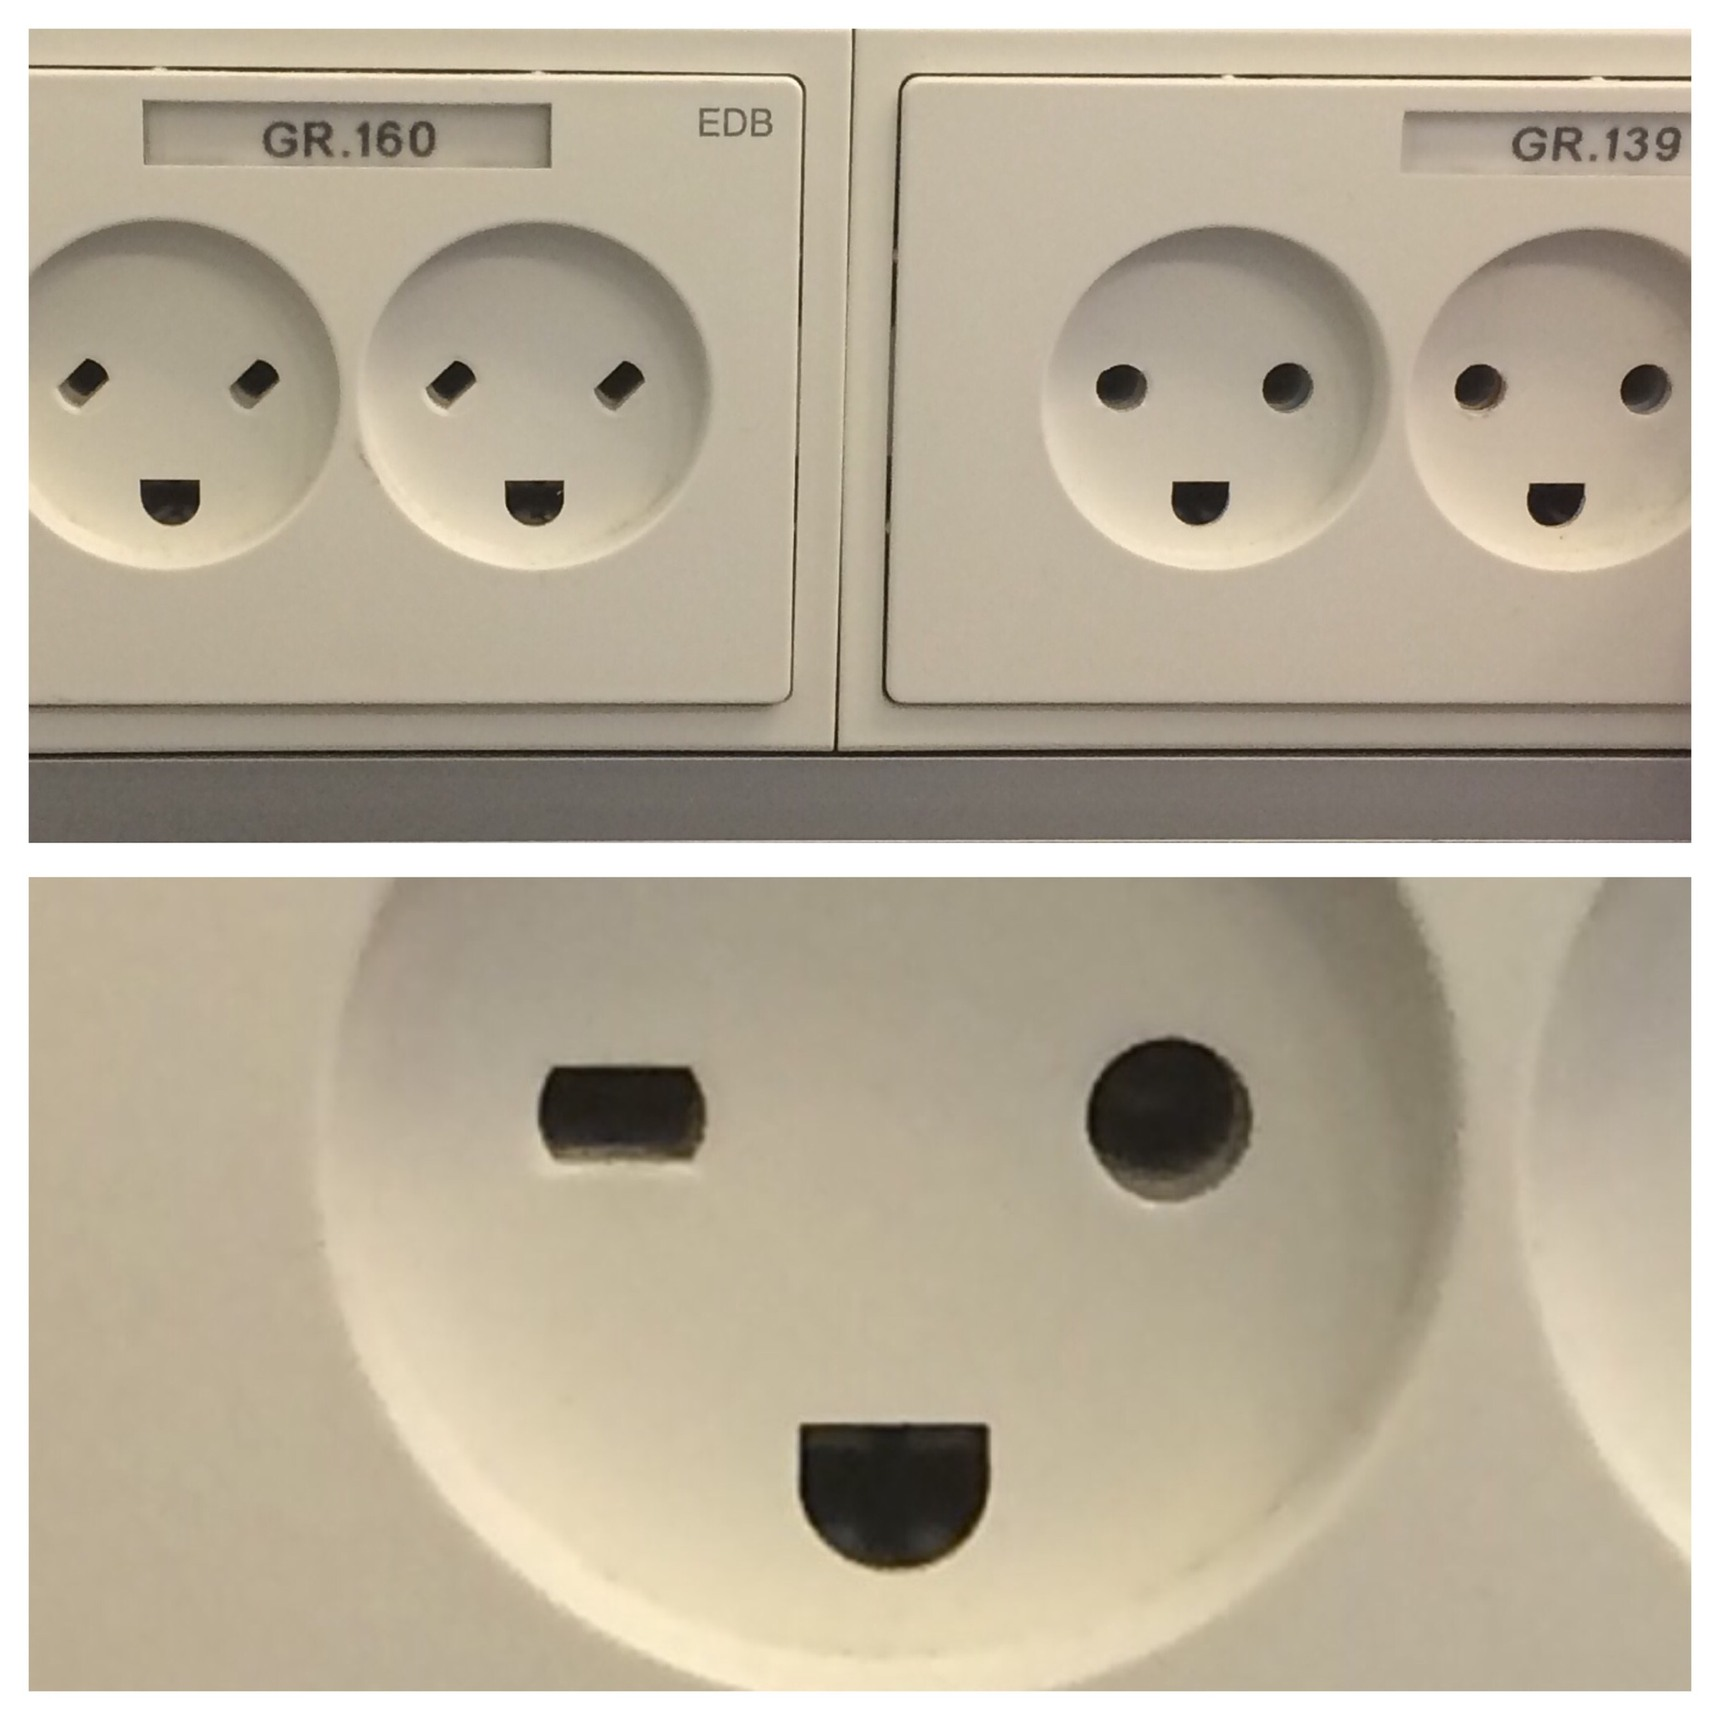 Danish power outlets are happy - meme